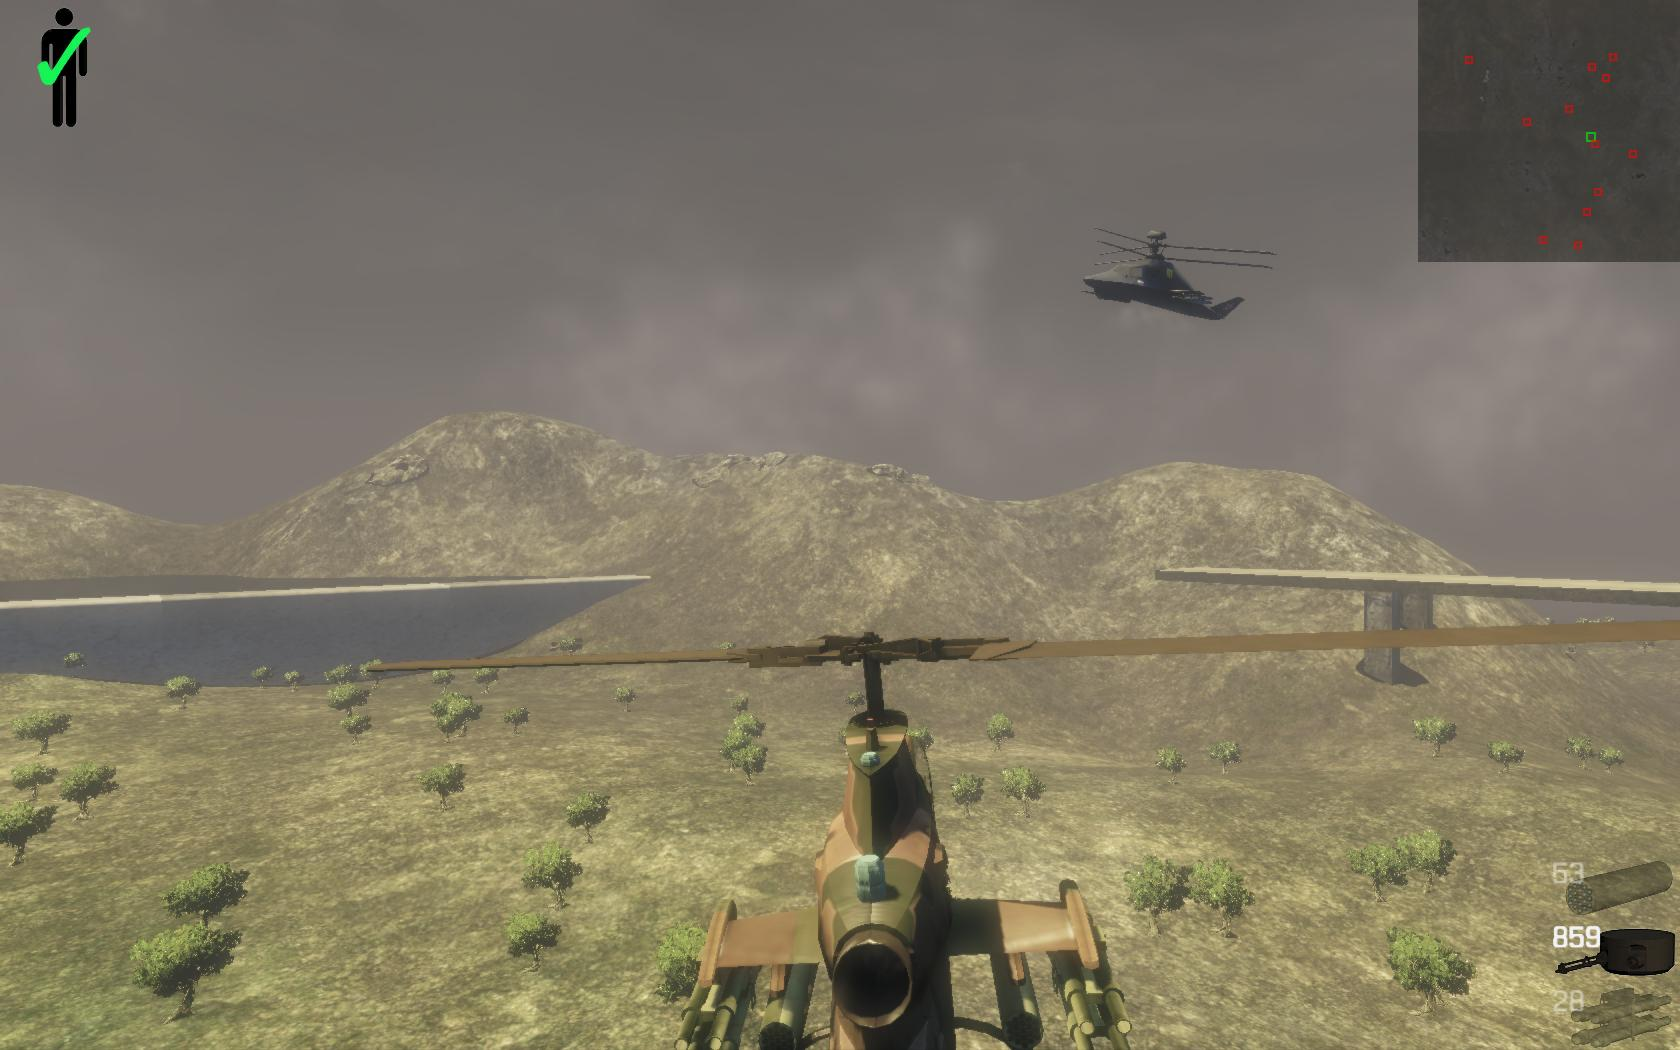 Helicopter Game with kinect - Epic Games Forums